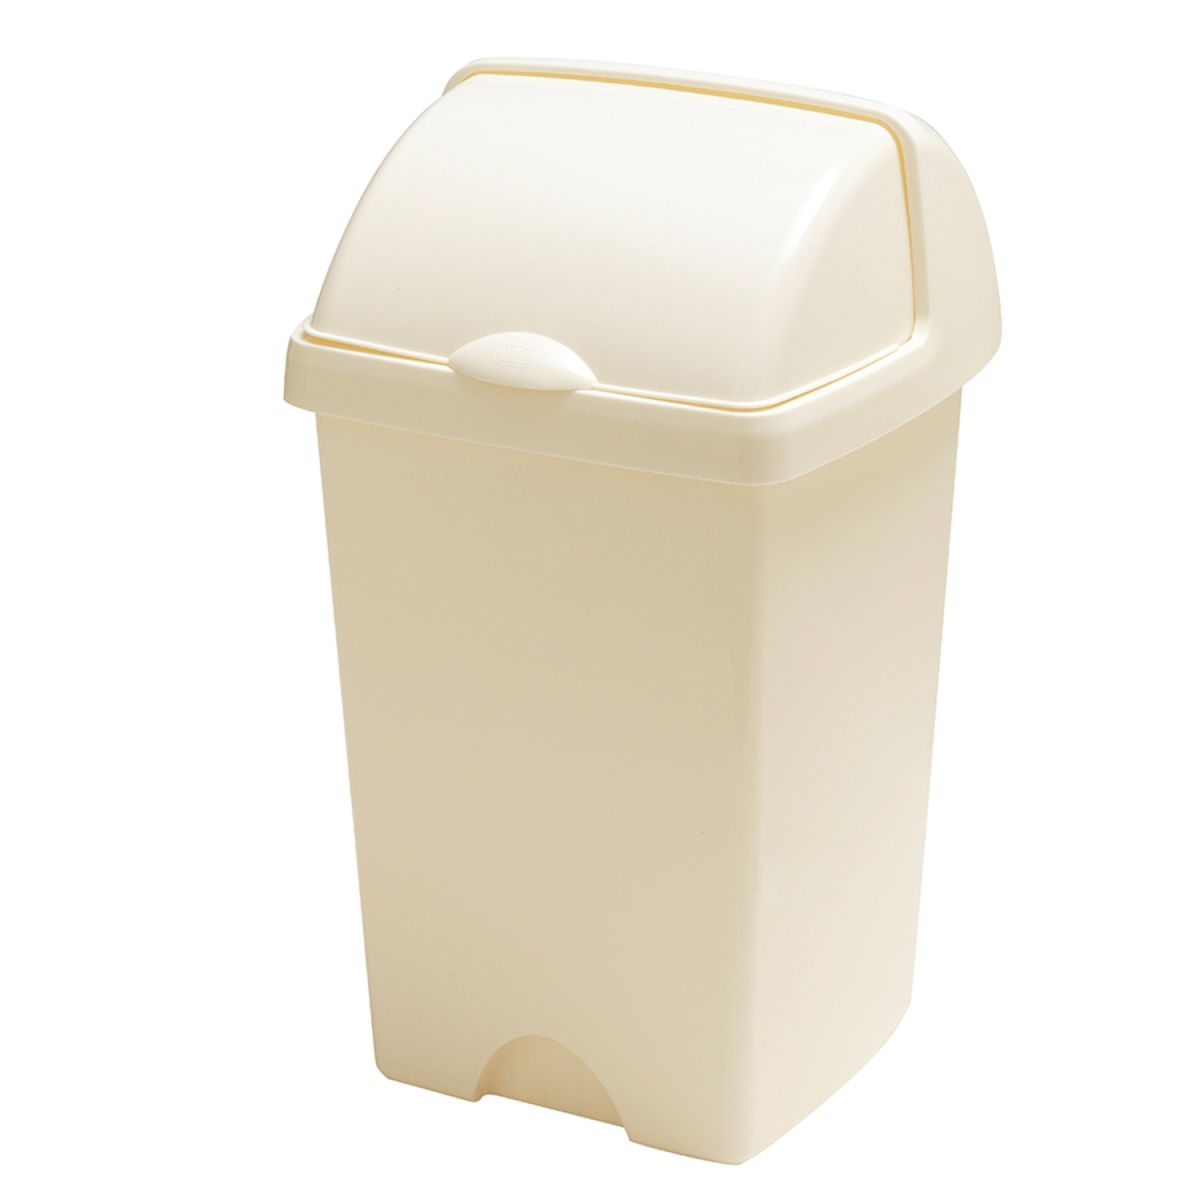 Addis 25L Roll Top Bin - Linen